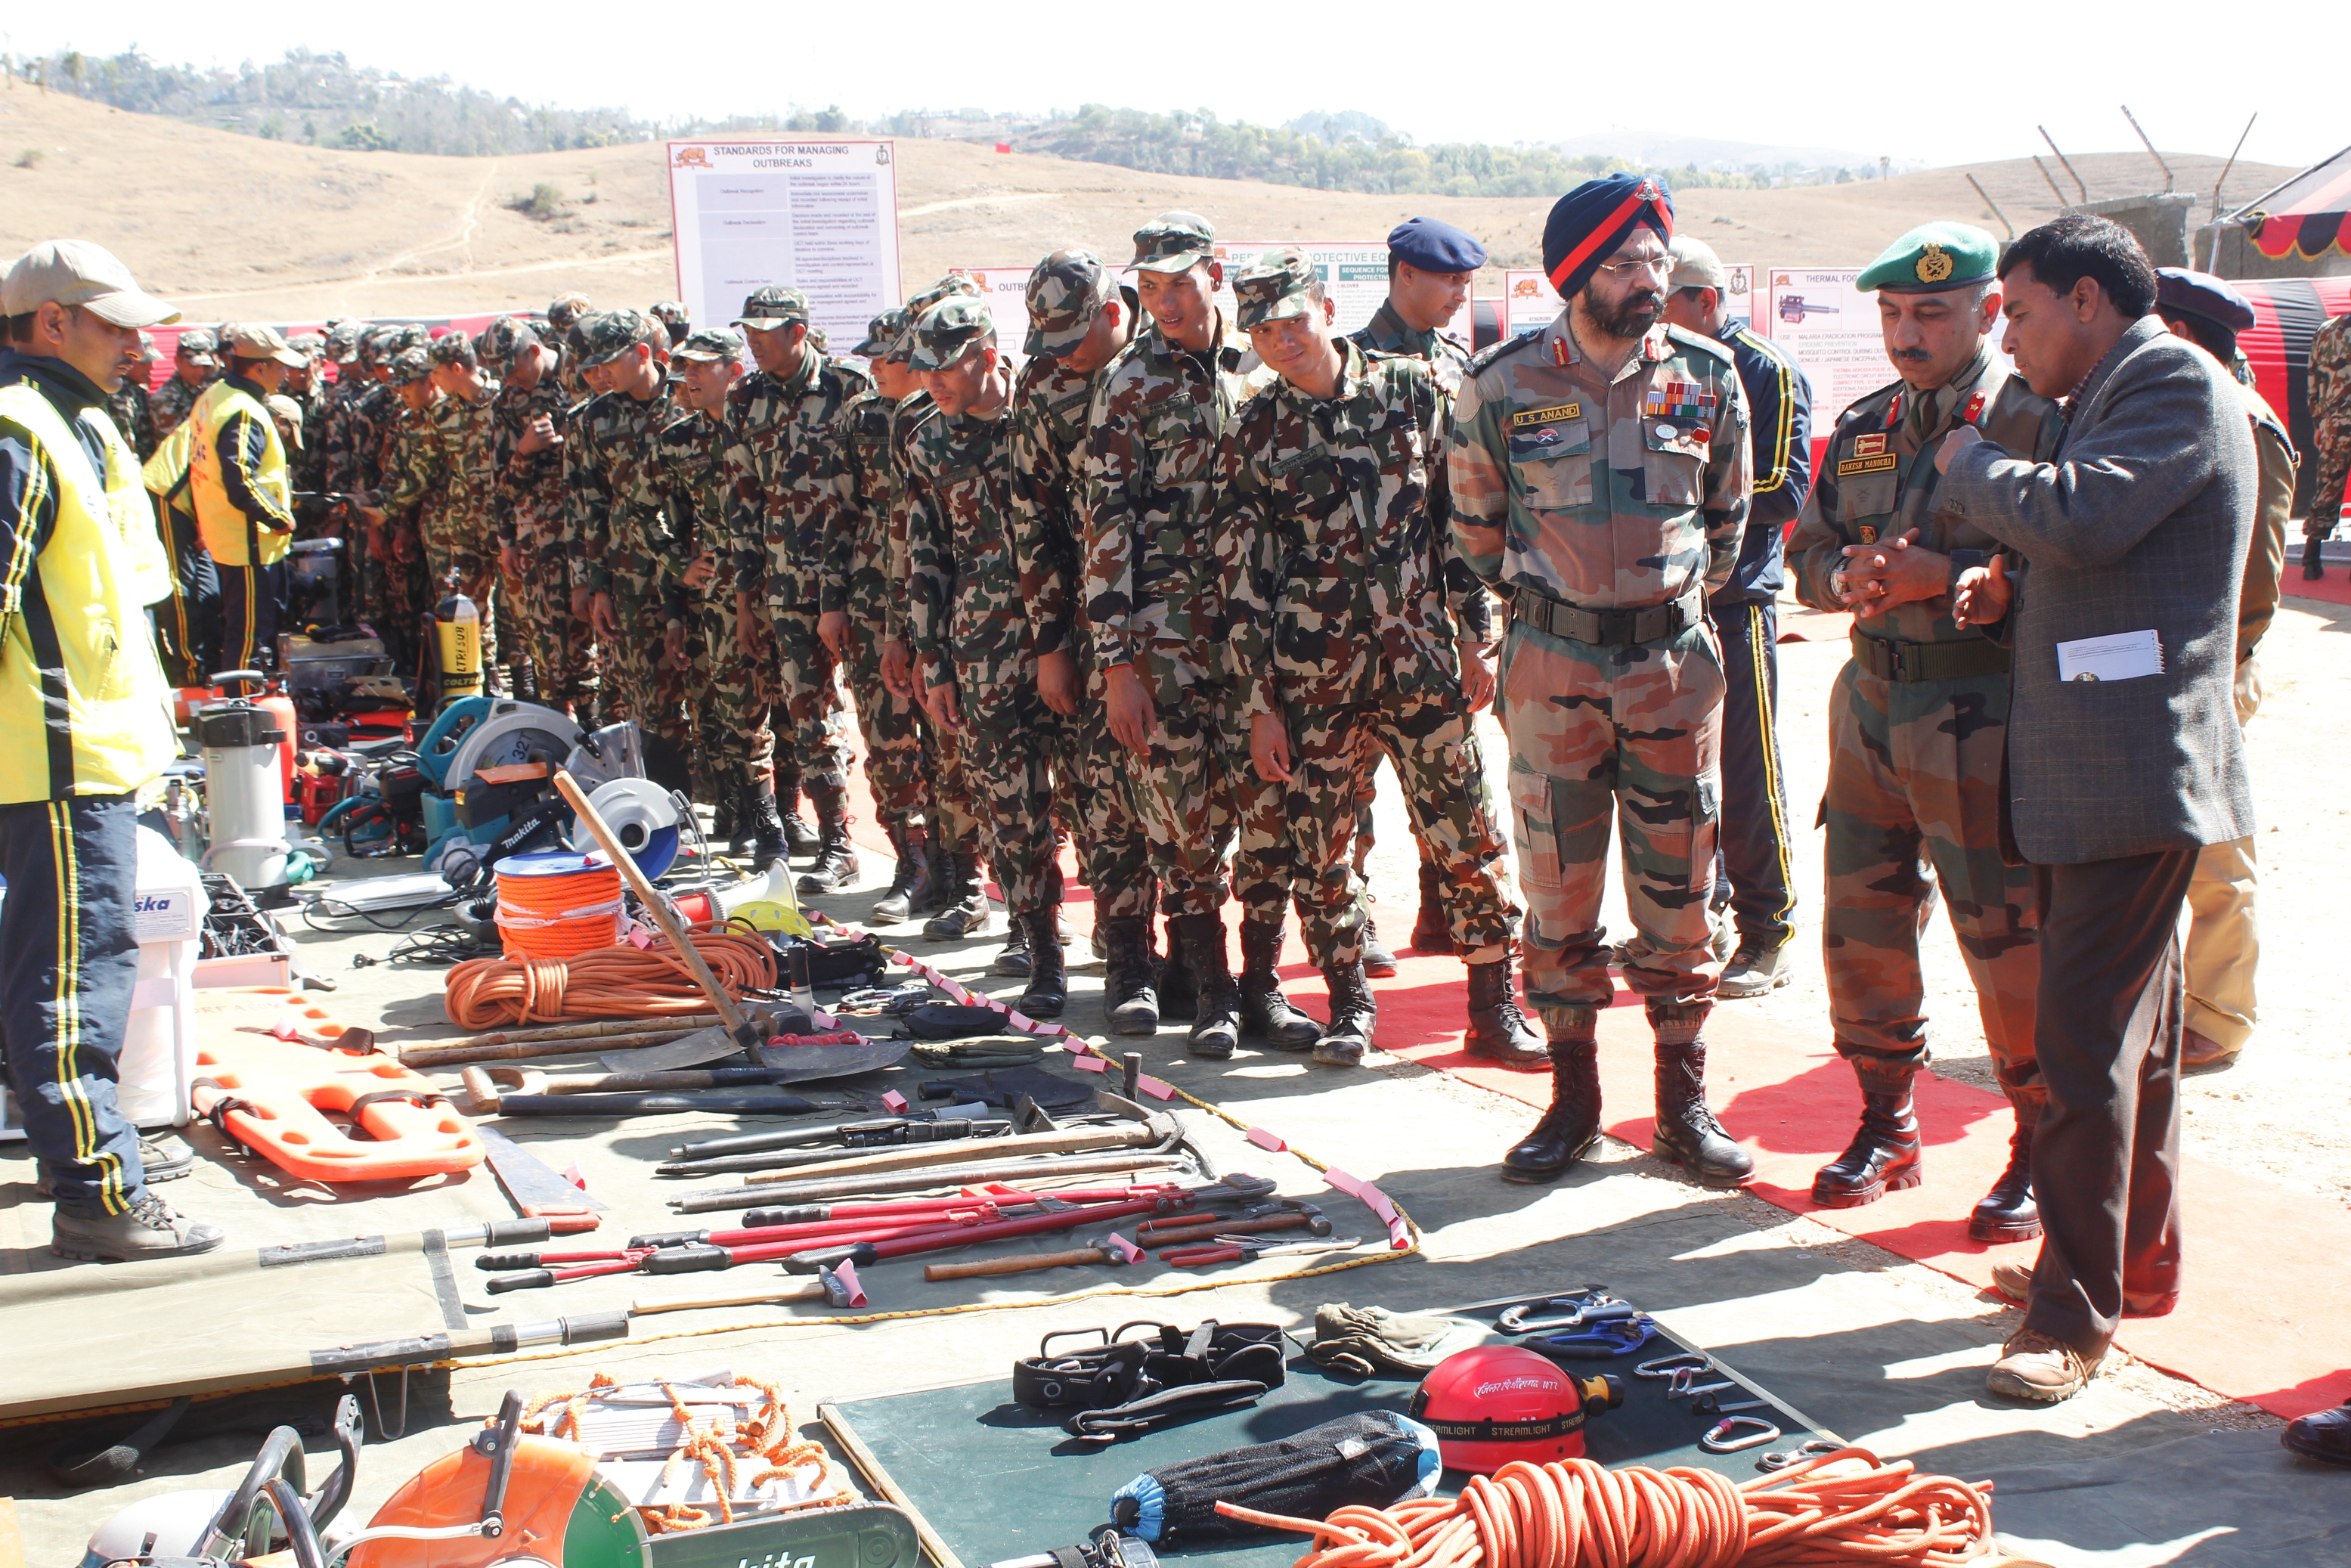 INDO NEPAL TROOPS BEING BRIEFD BY SDRF DURING EQPT DISPLAY OF DISASTER MGMT TOOLS (2).JPG